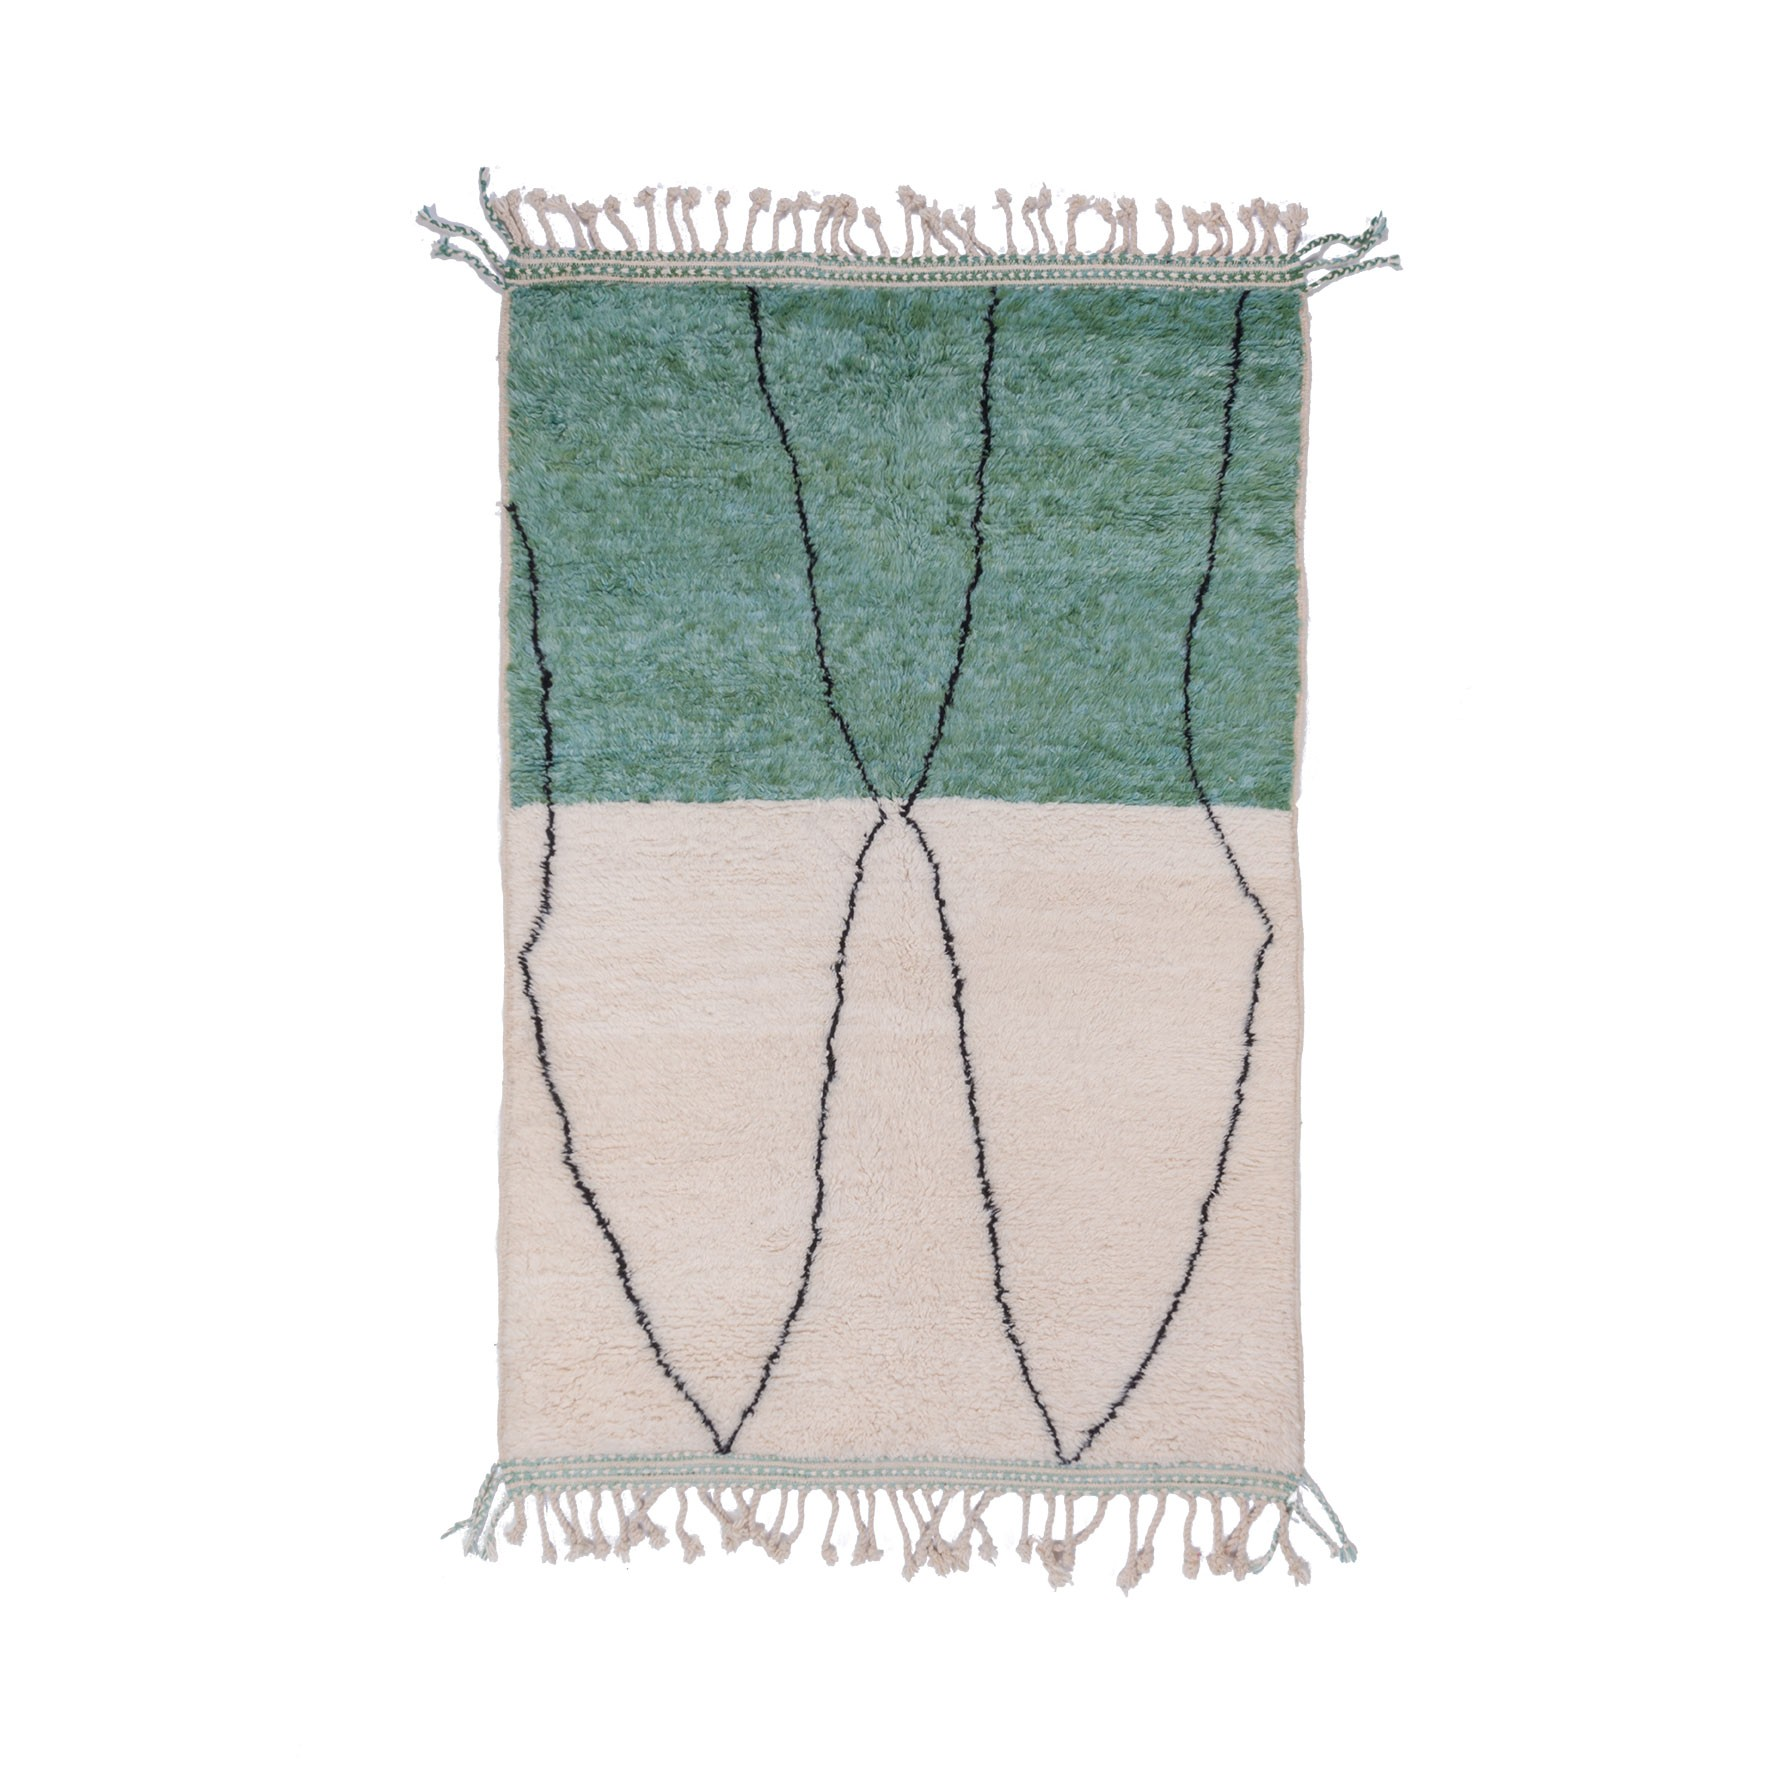 Beni Ouarain two-tone green and white rug